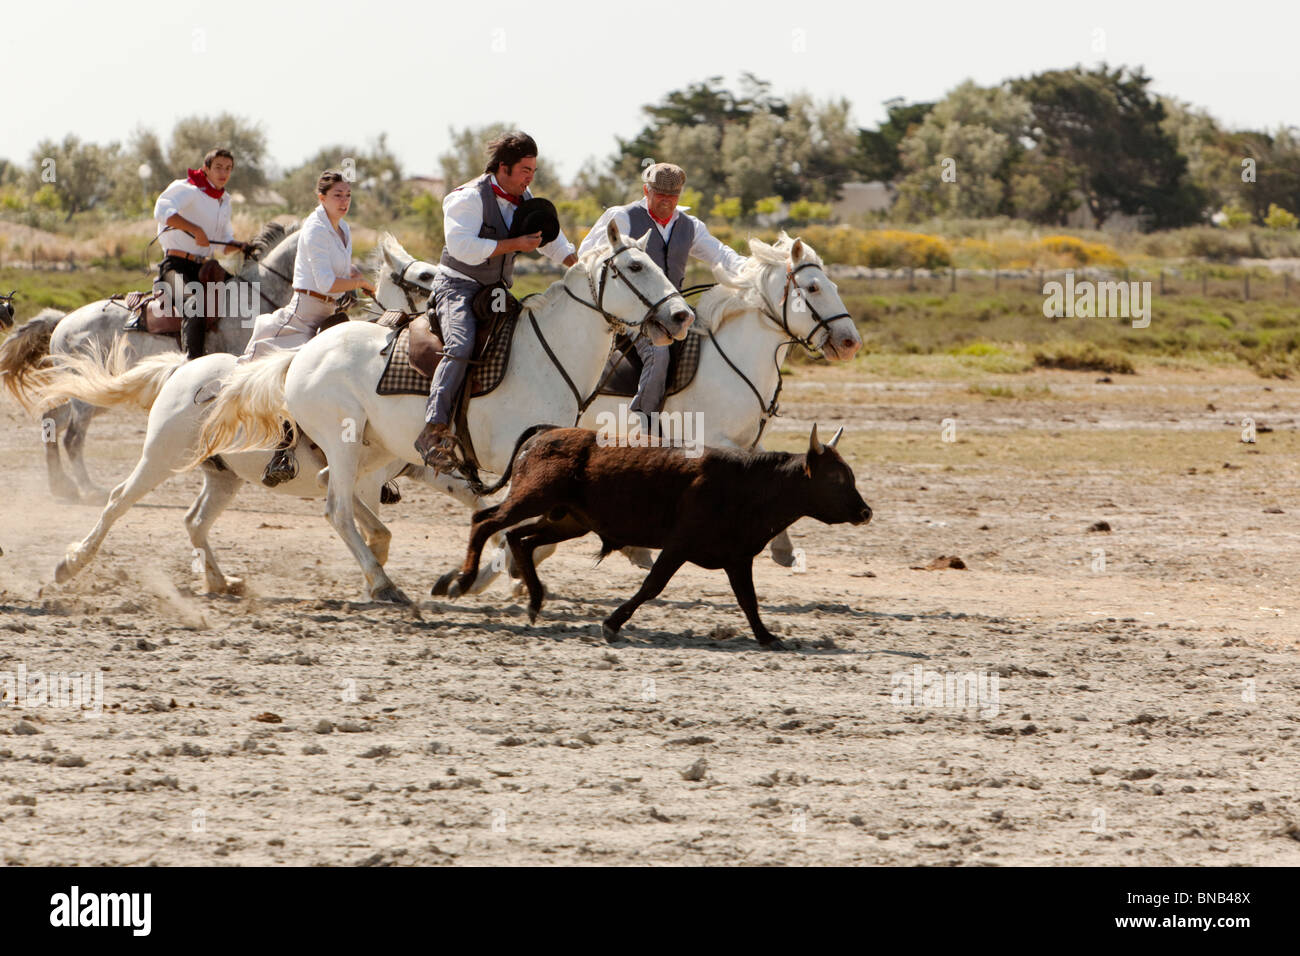 Gardians, the cowboys of the Camargue region, chasing a young black bull for the branding - Stock Image